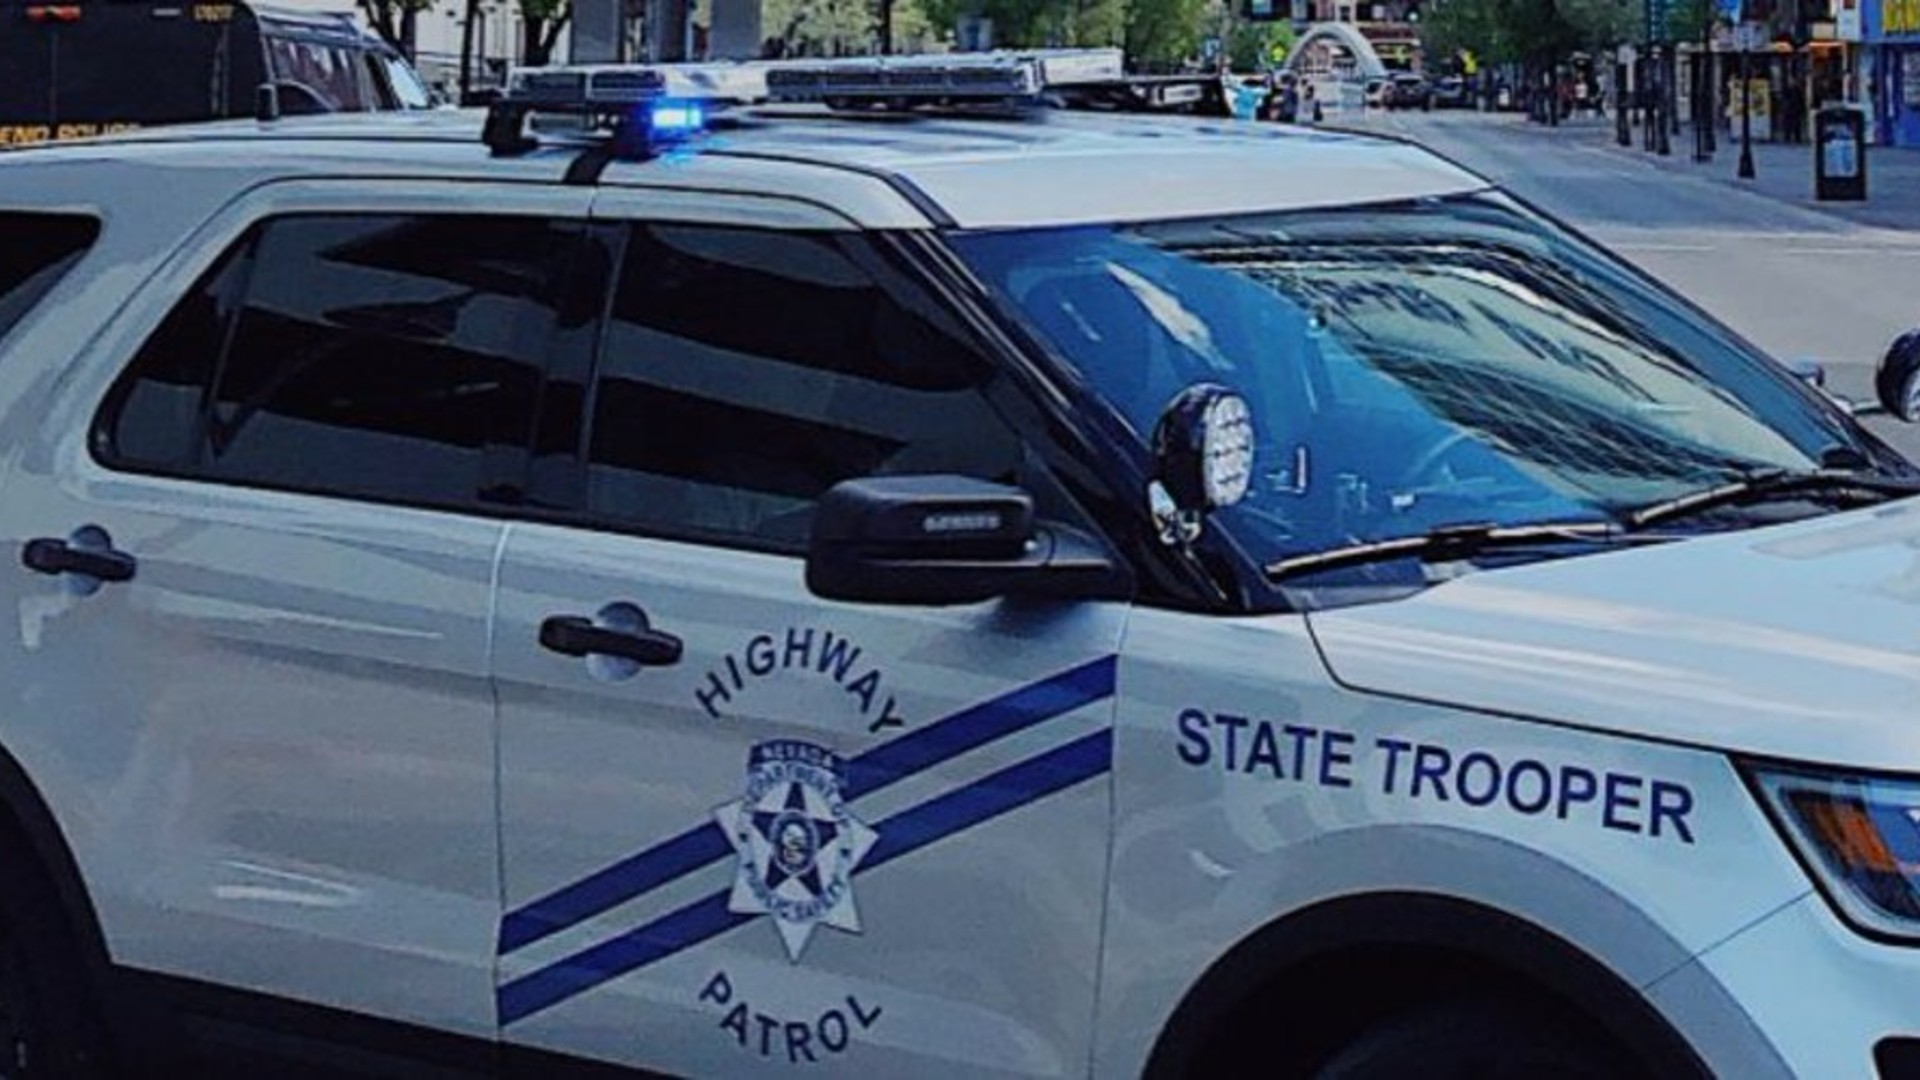 A Nevada Highway Patrol vehicle is seen in a photo posted to the agency's Twitter account.